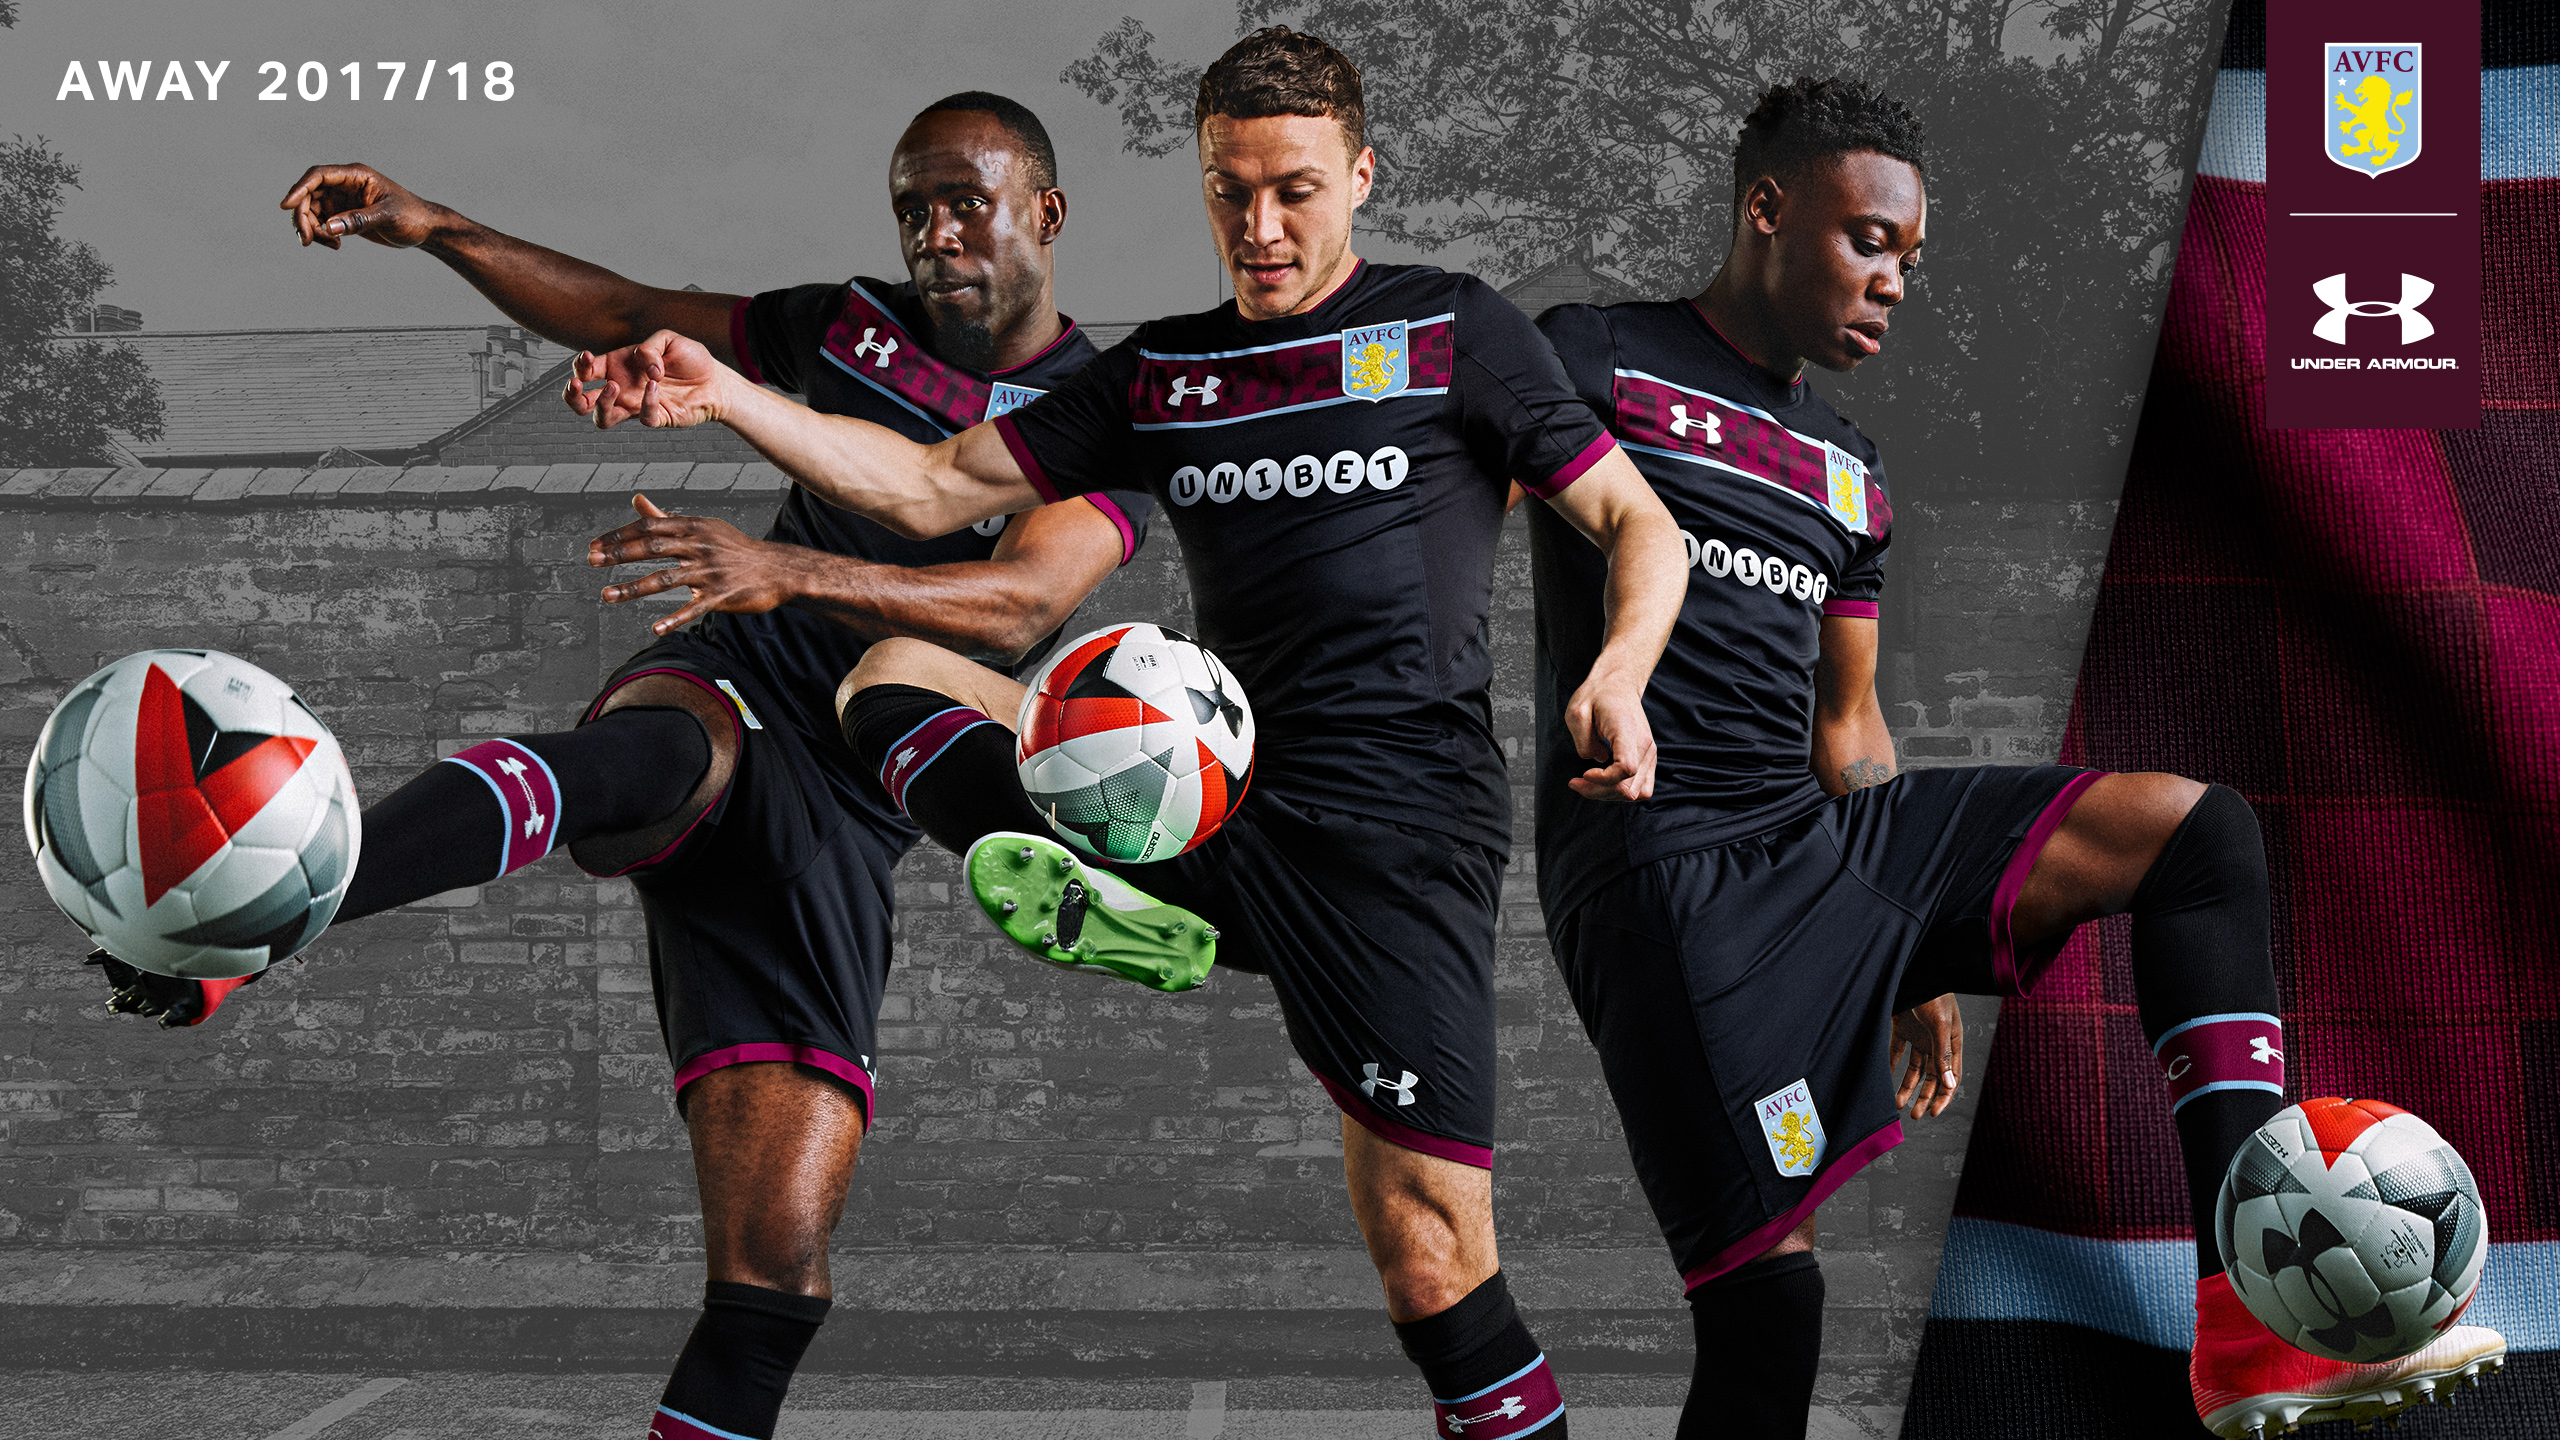 New 2017 18 Kits Revealed Aston Villa Football Club Avfc